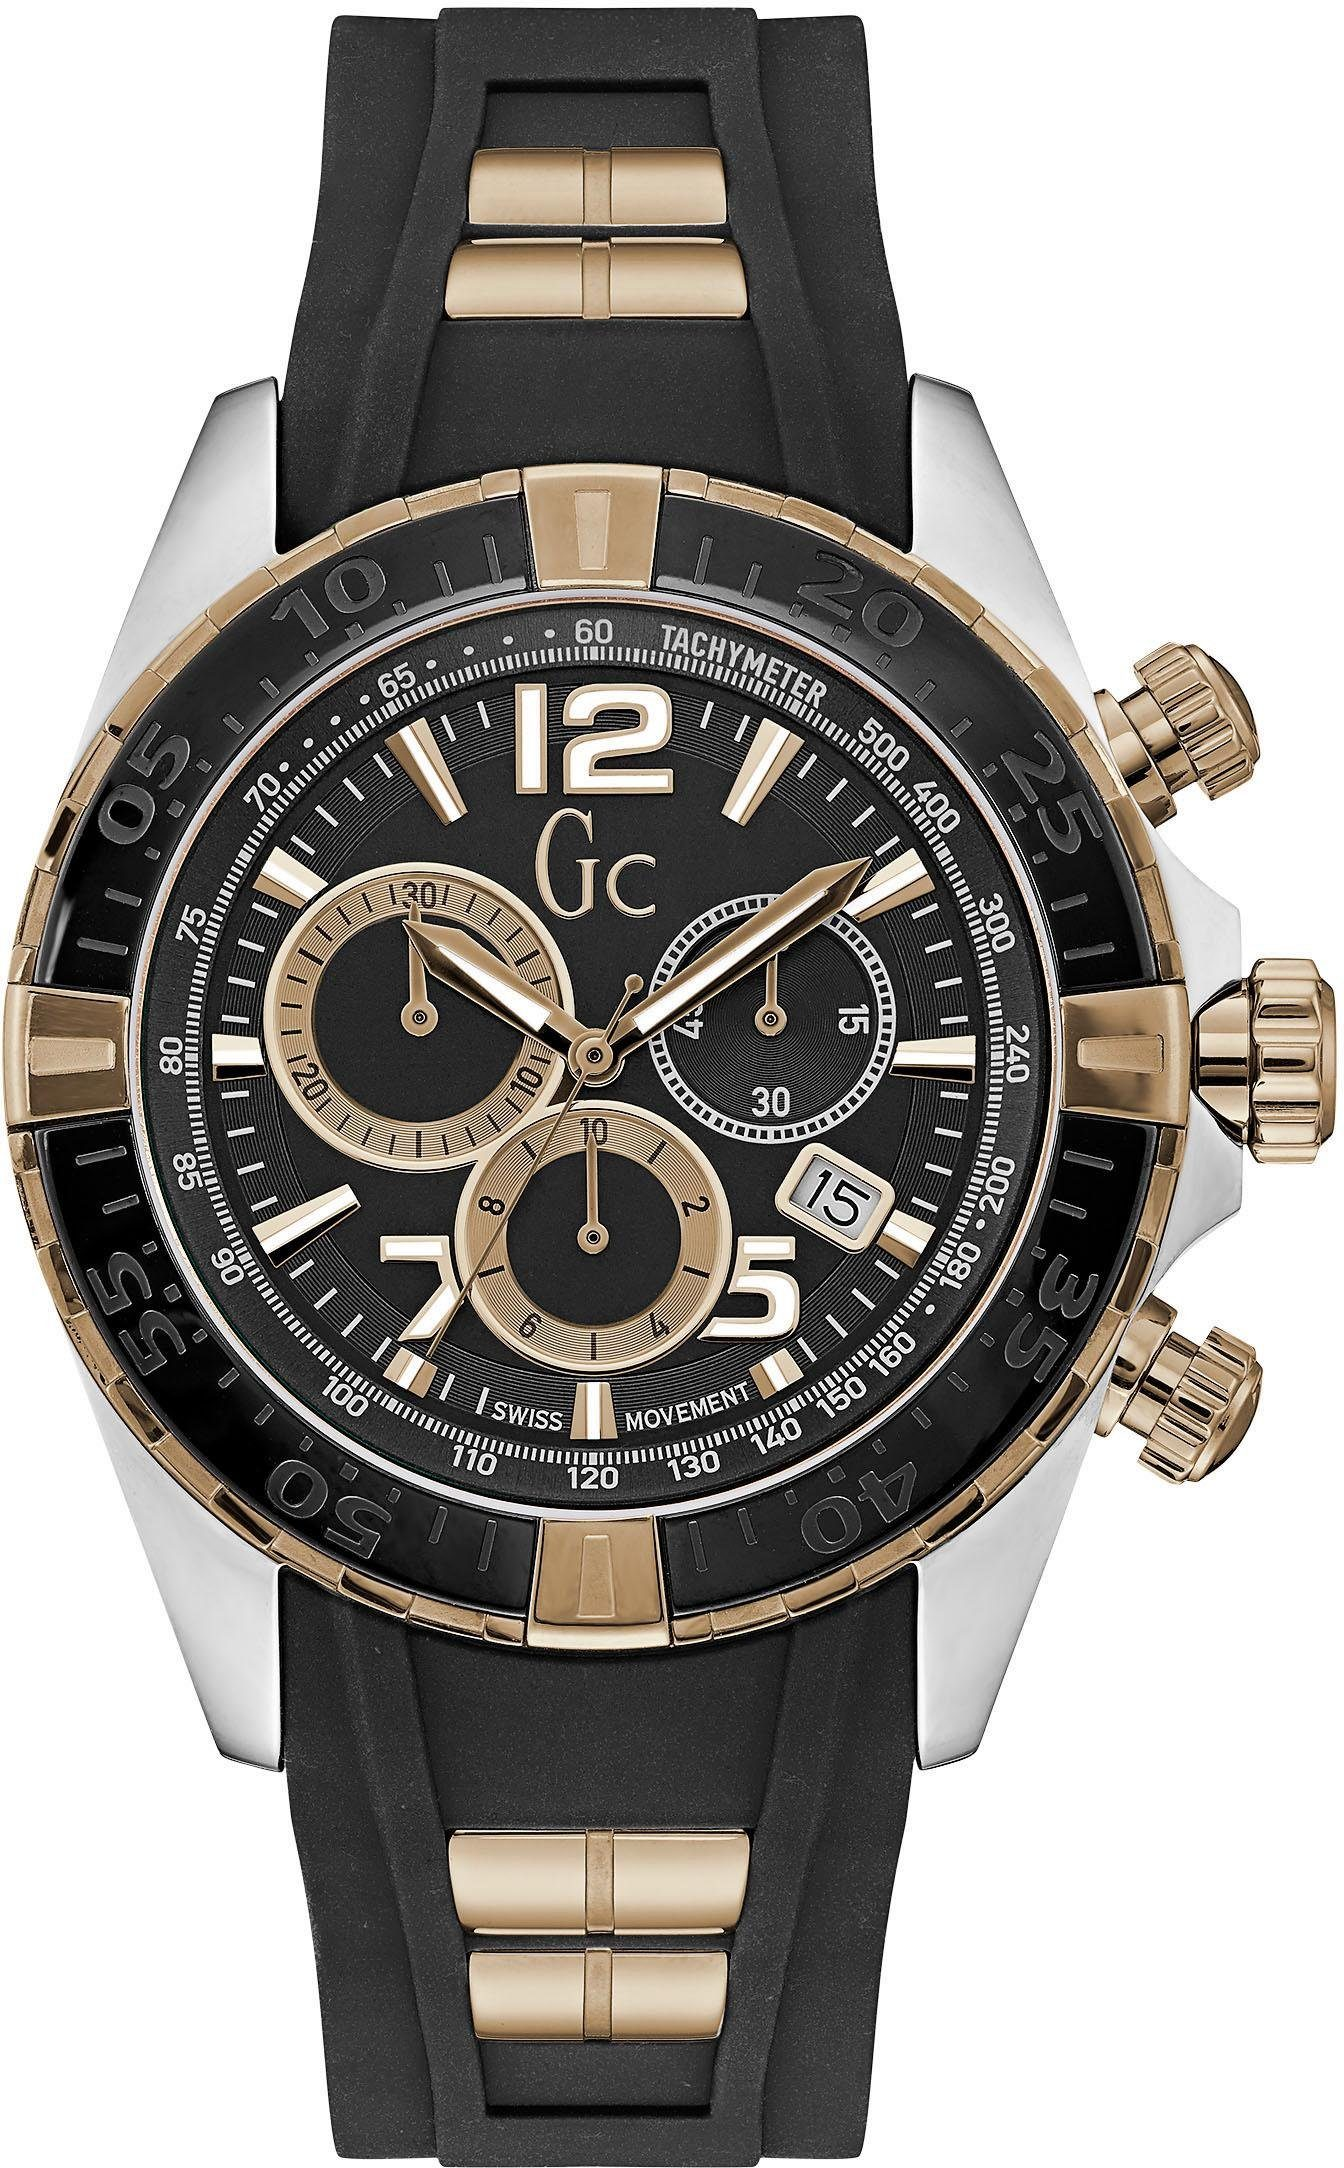 GC Chronograph »Gc SportRacer, Y02011G2«